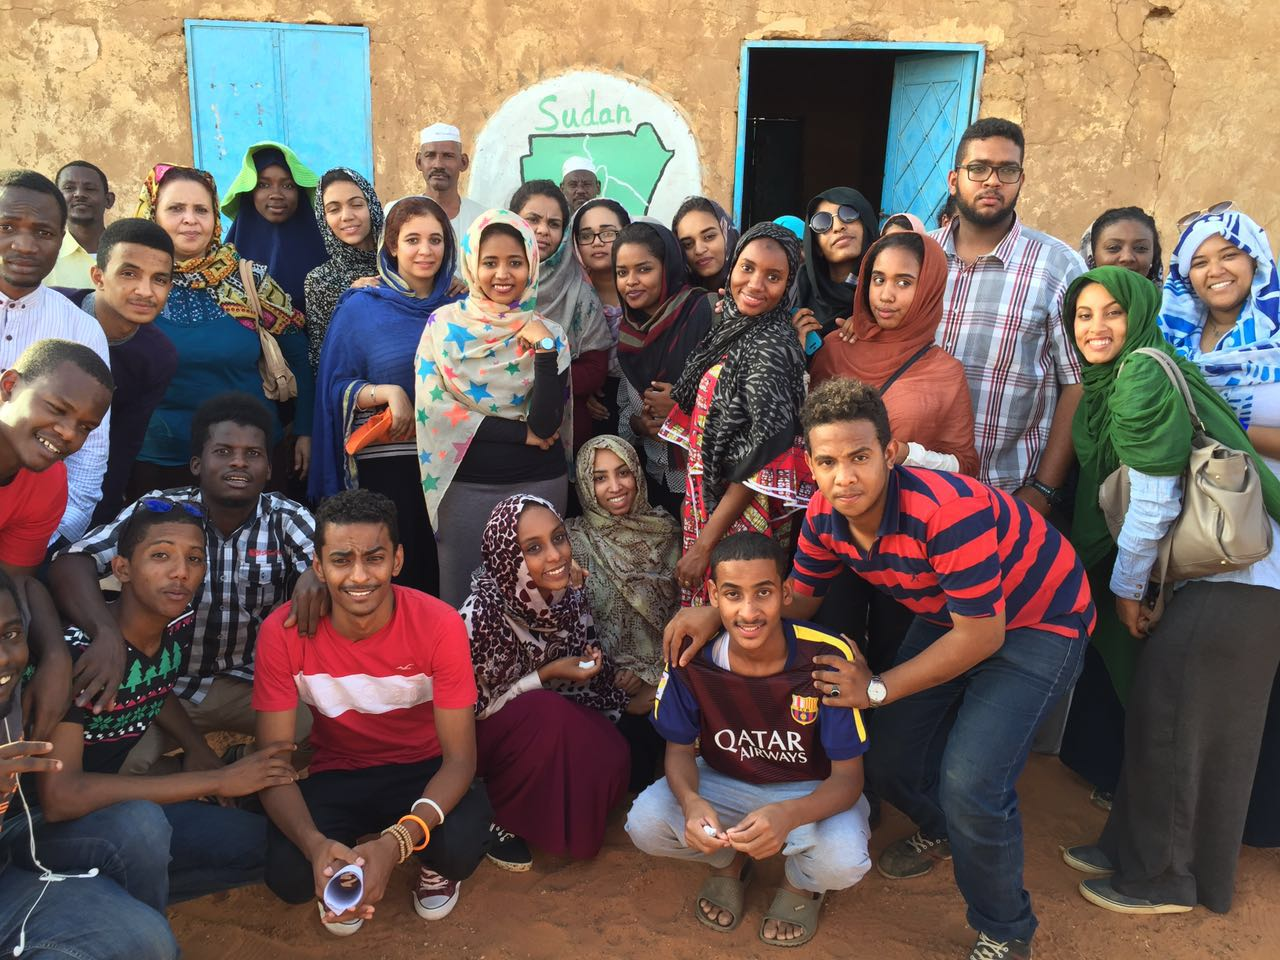 UMST Students from the Faculty of Economics, Social & Environmental Studies